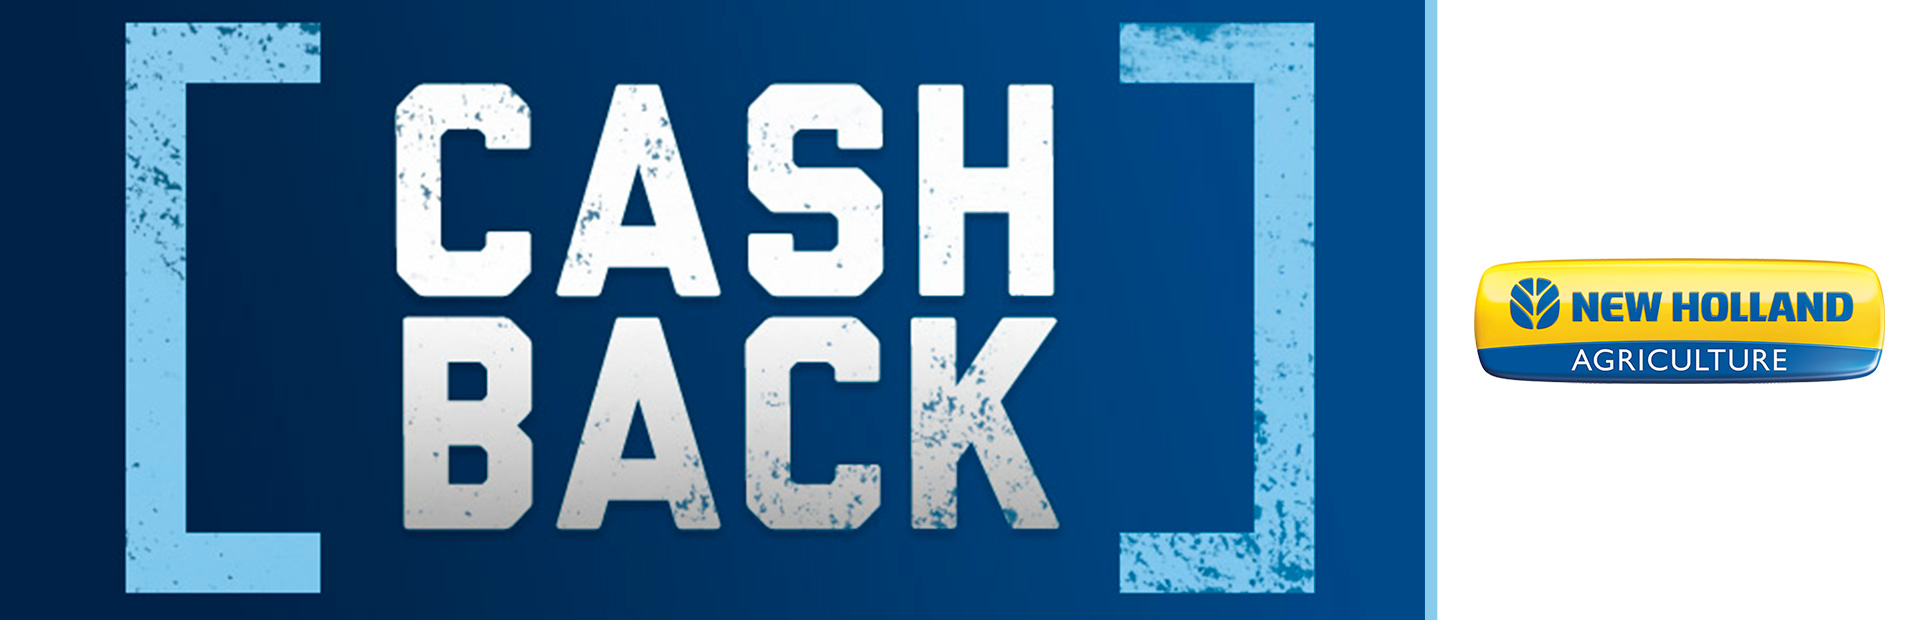 New Holland Agriculture: Cash Back